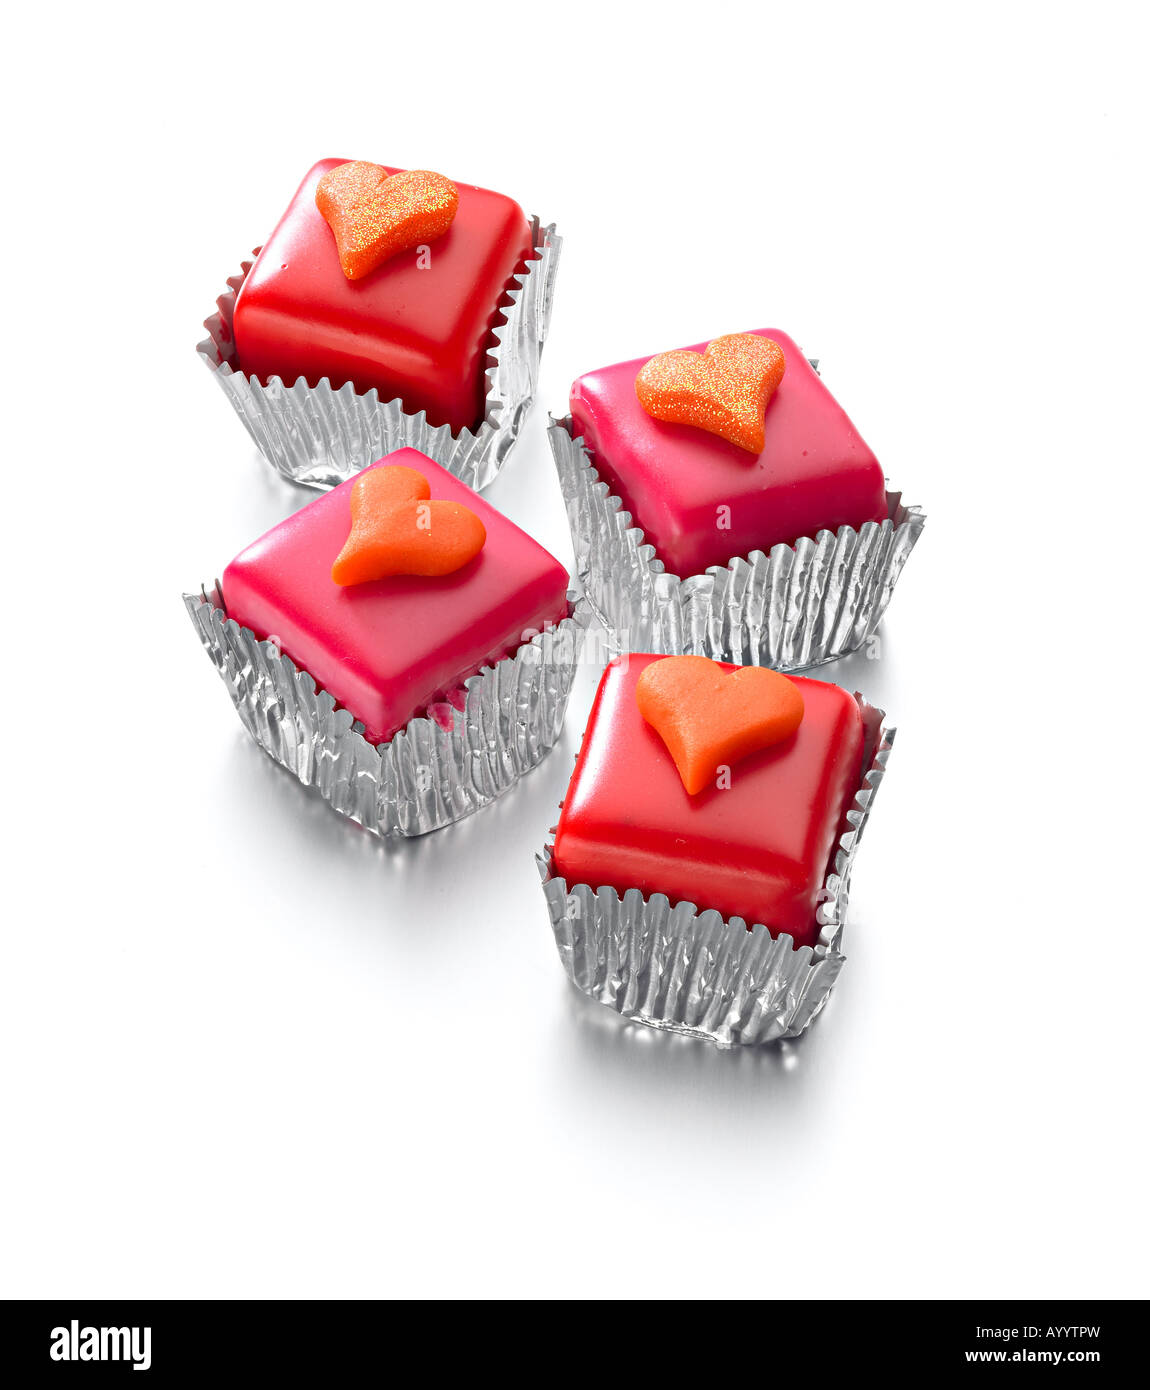 heart cakes - Stock Image